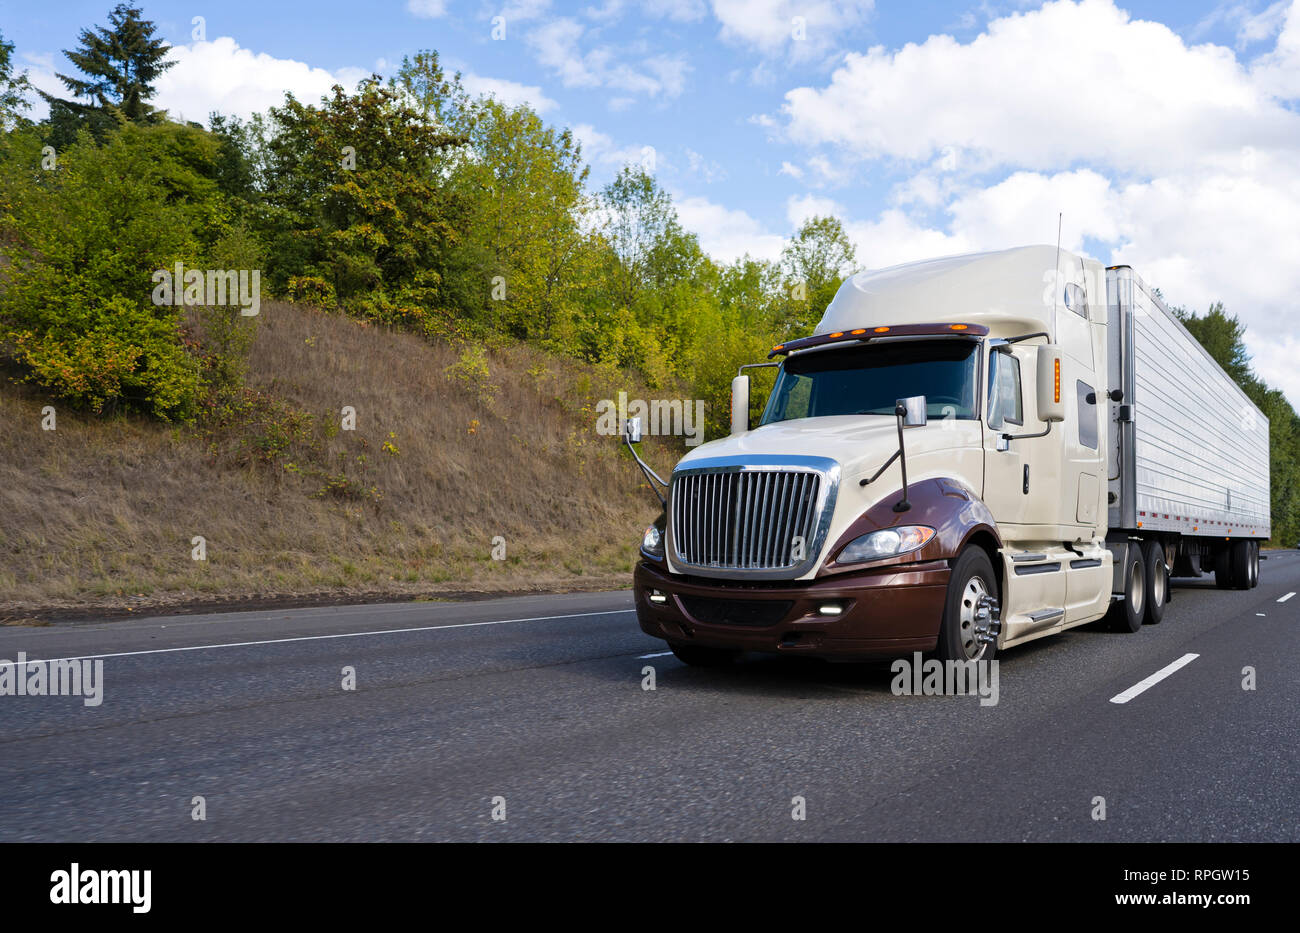 Two tones big rig American modern bonnet long haul semi truck with cabin with compartment for driver rest transporting cargo in refrigerated semi trai - Stock Image